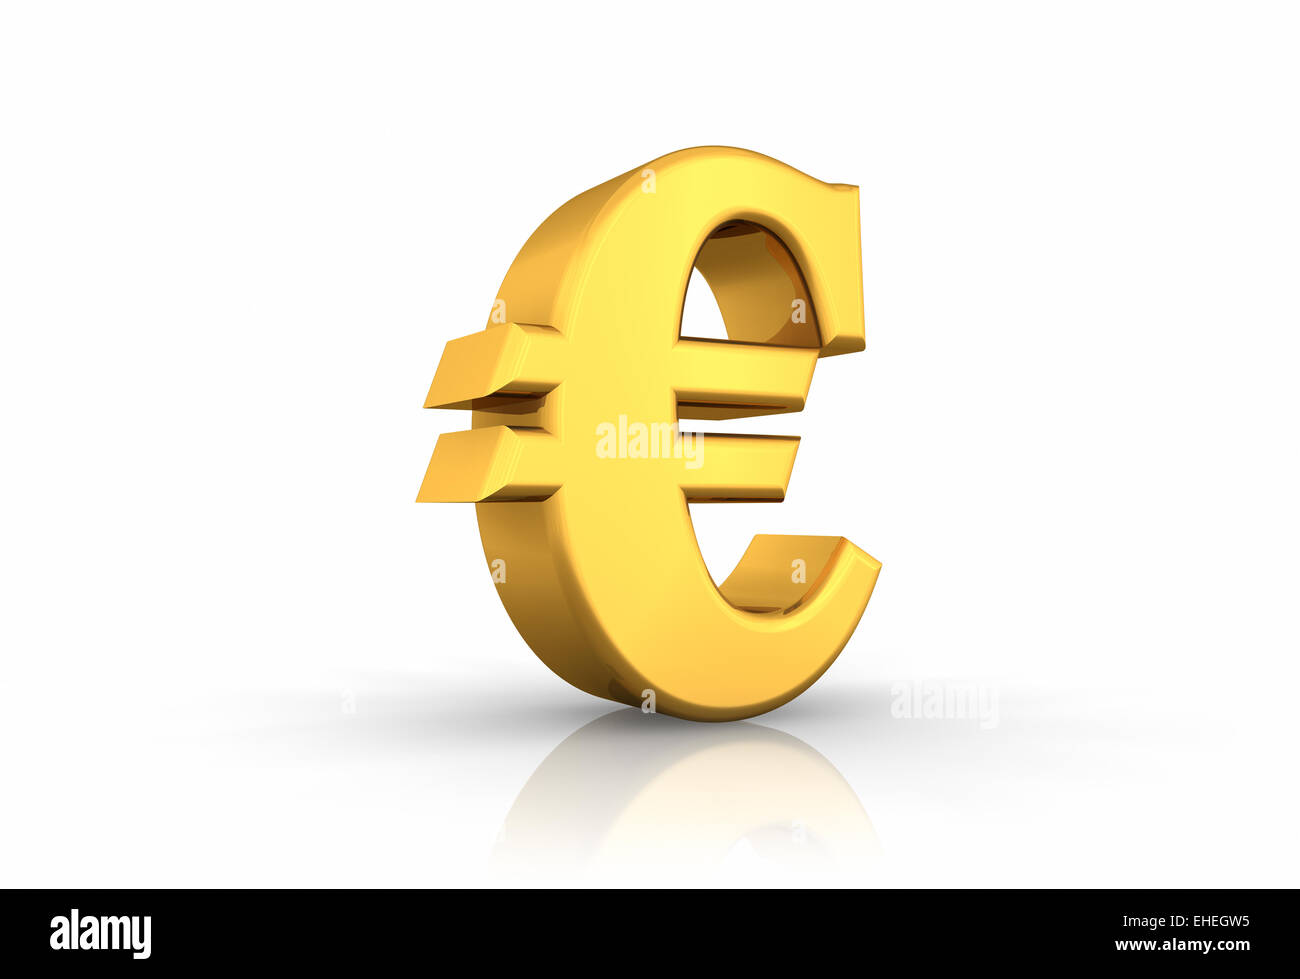 Gold Euro Sign - Stock Image